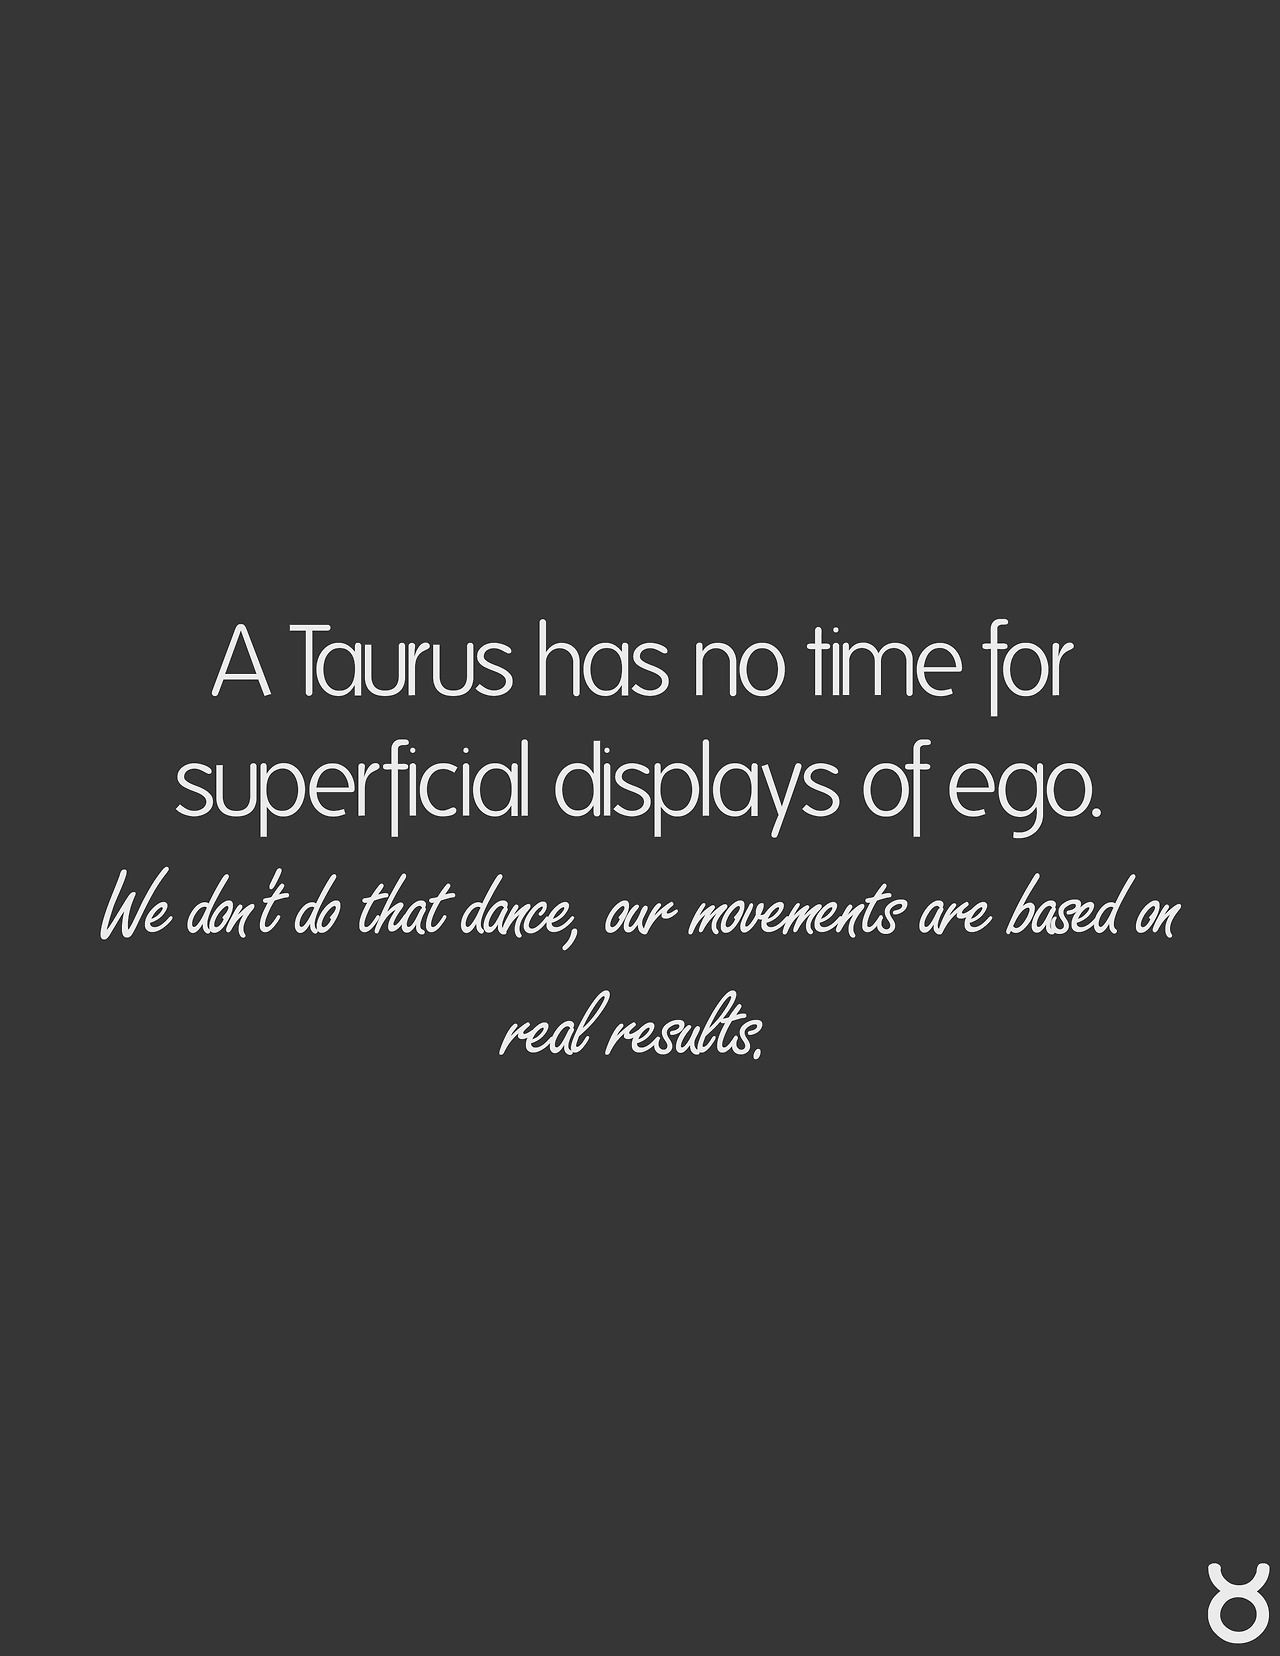 Taurus Quotes A Taurus Has No Time For Superficial Displays Of Egowe Don't Do